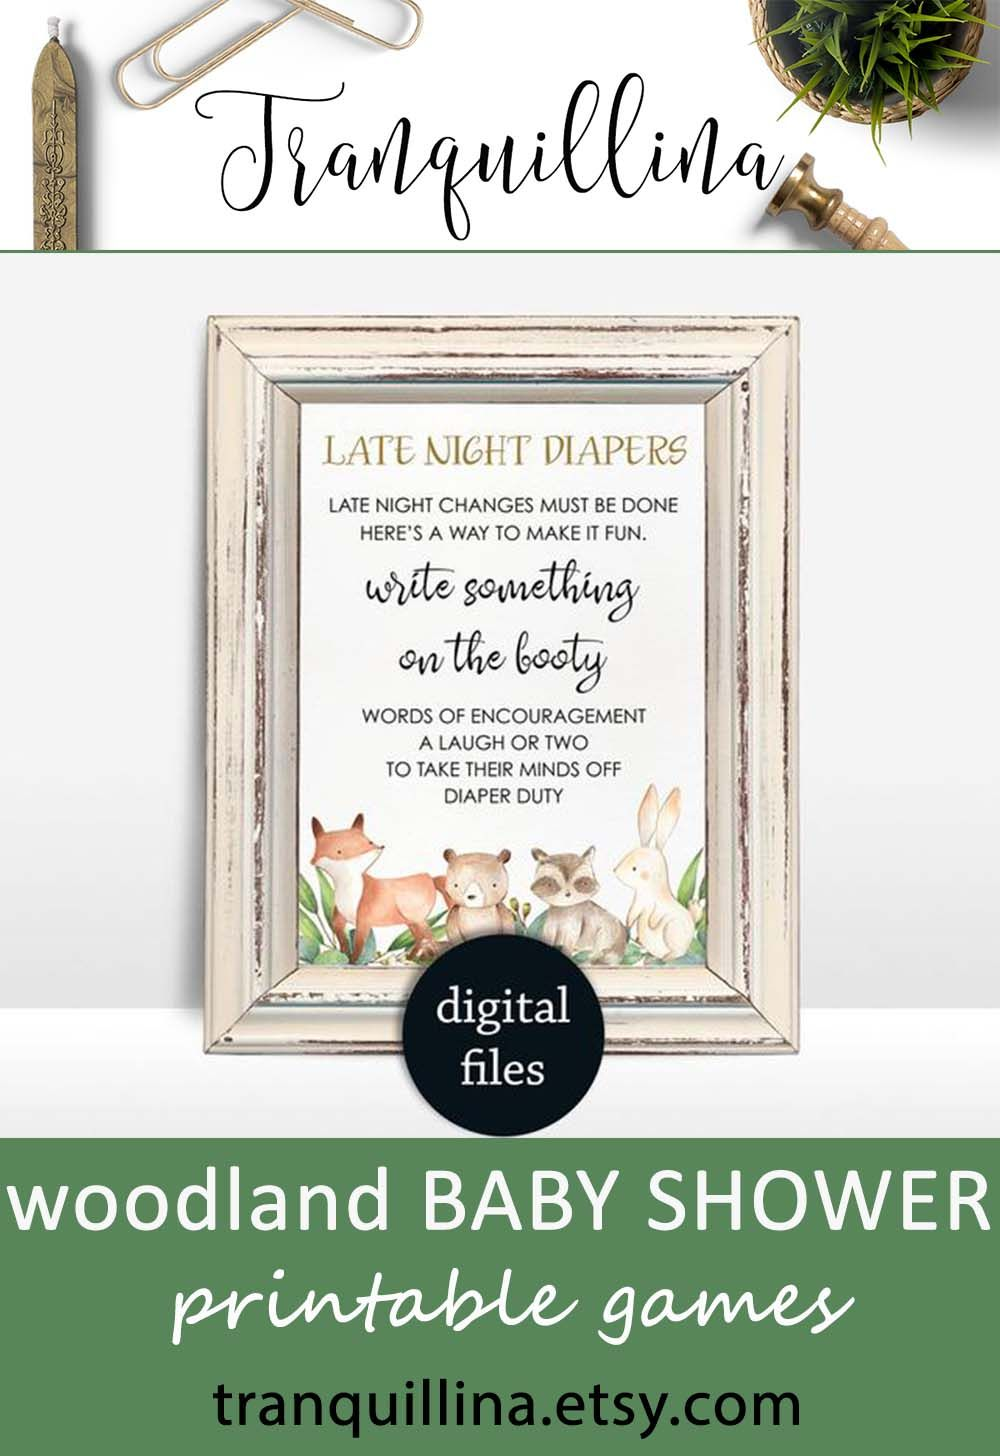 Late night diapers sign Woodland baby shower game Printable girl boy baby shower decor, neutral baby shower game Diaper thoughts game